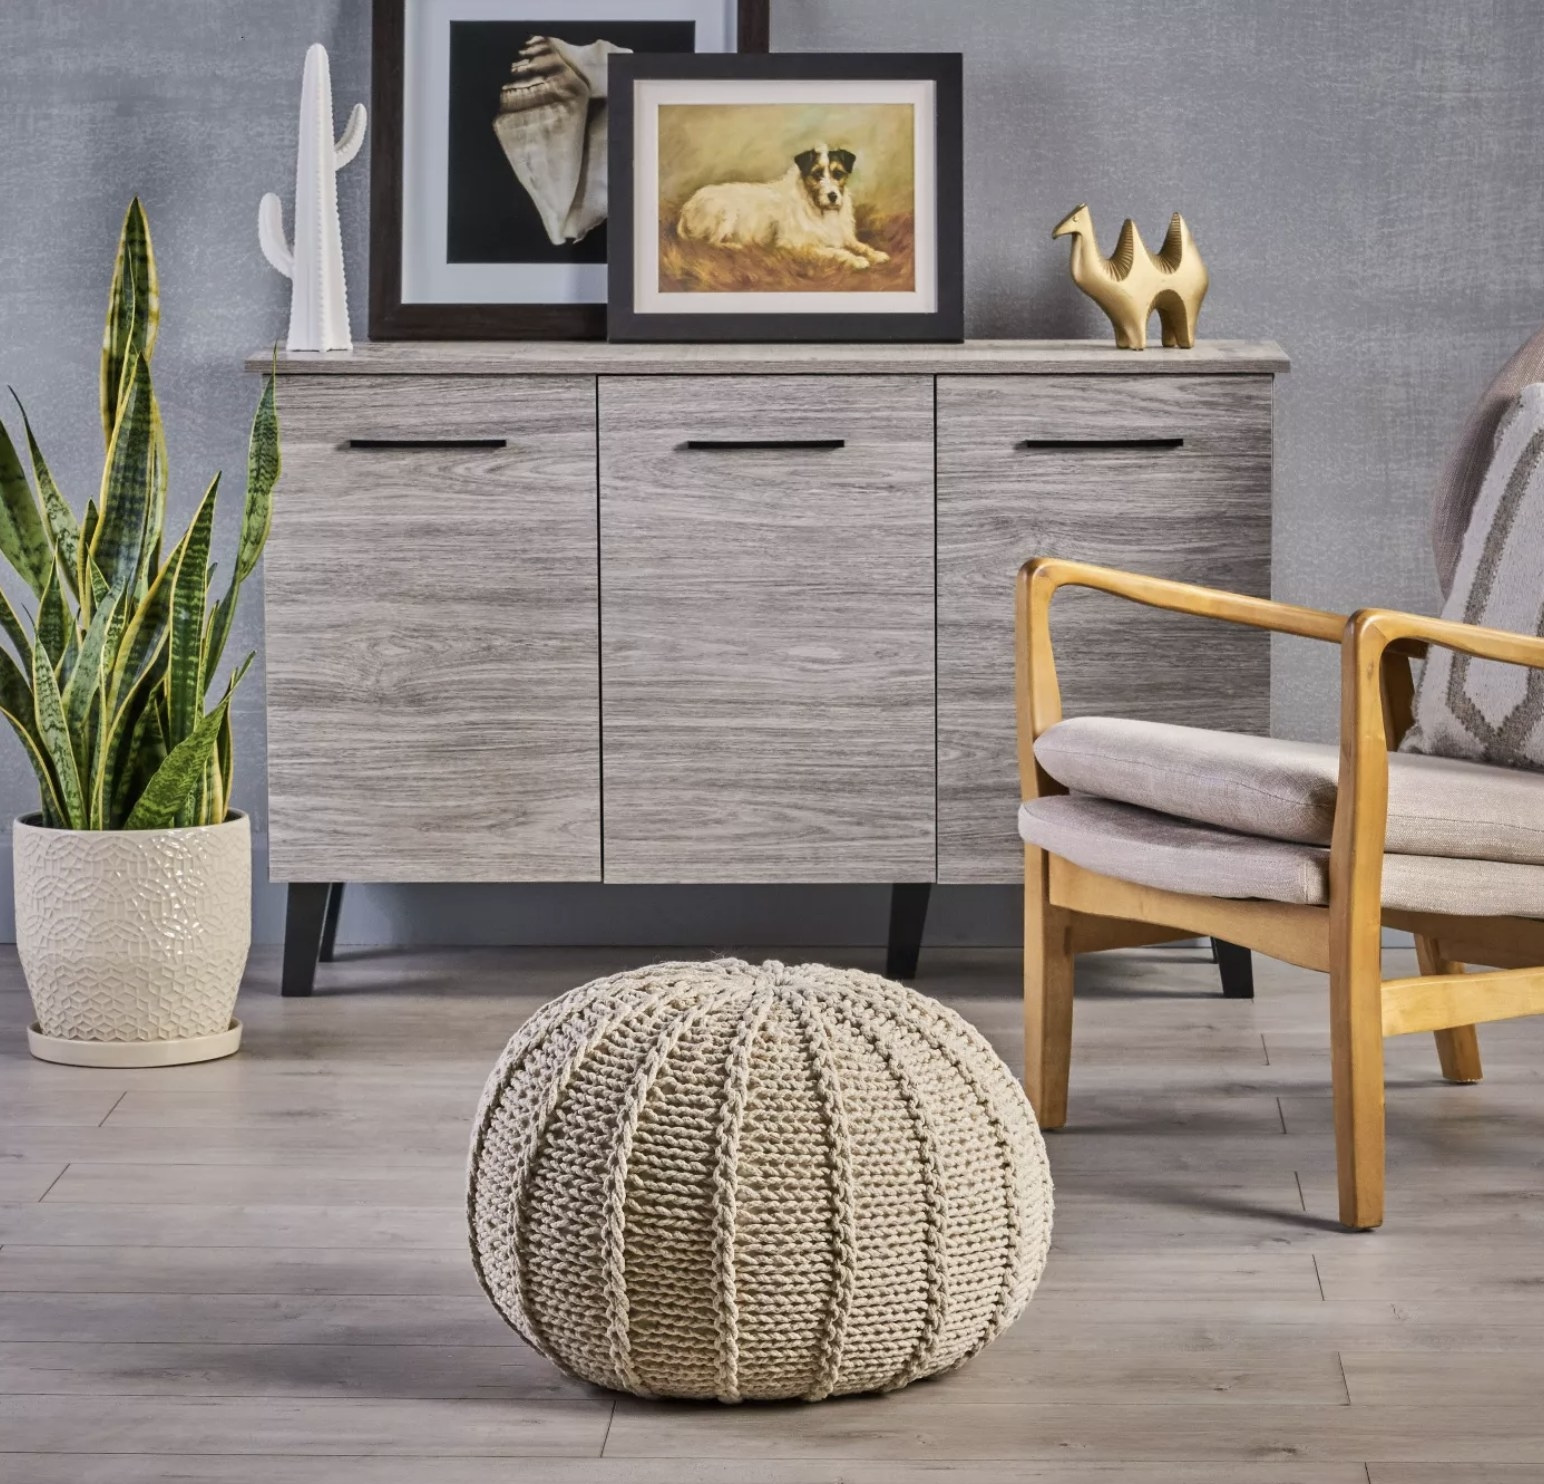 A white knitted cotton pouf with handcrafted details sits on the floor of a living room